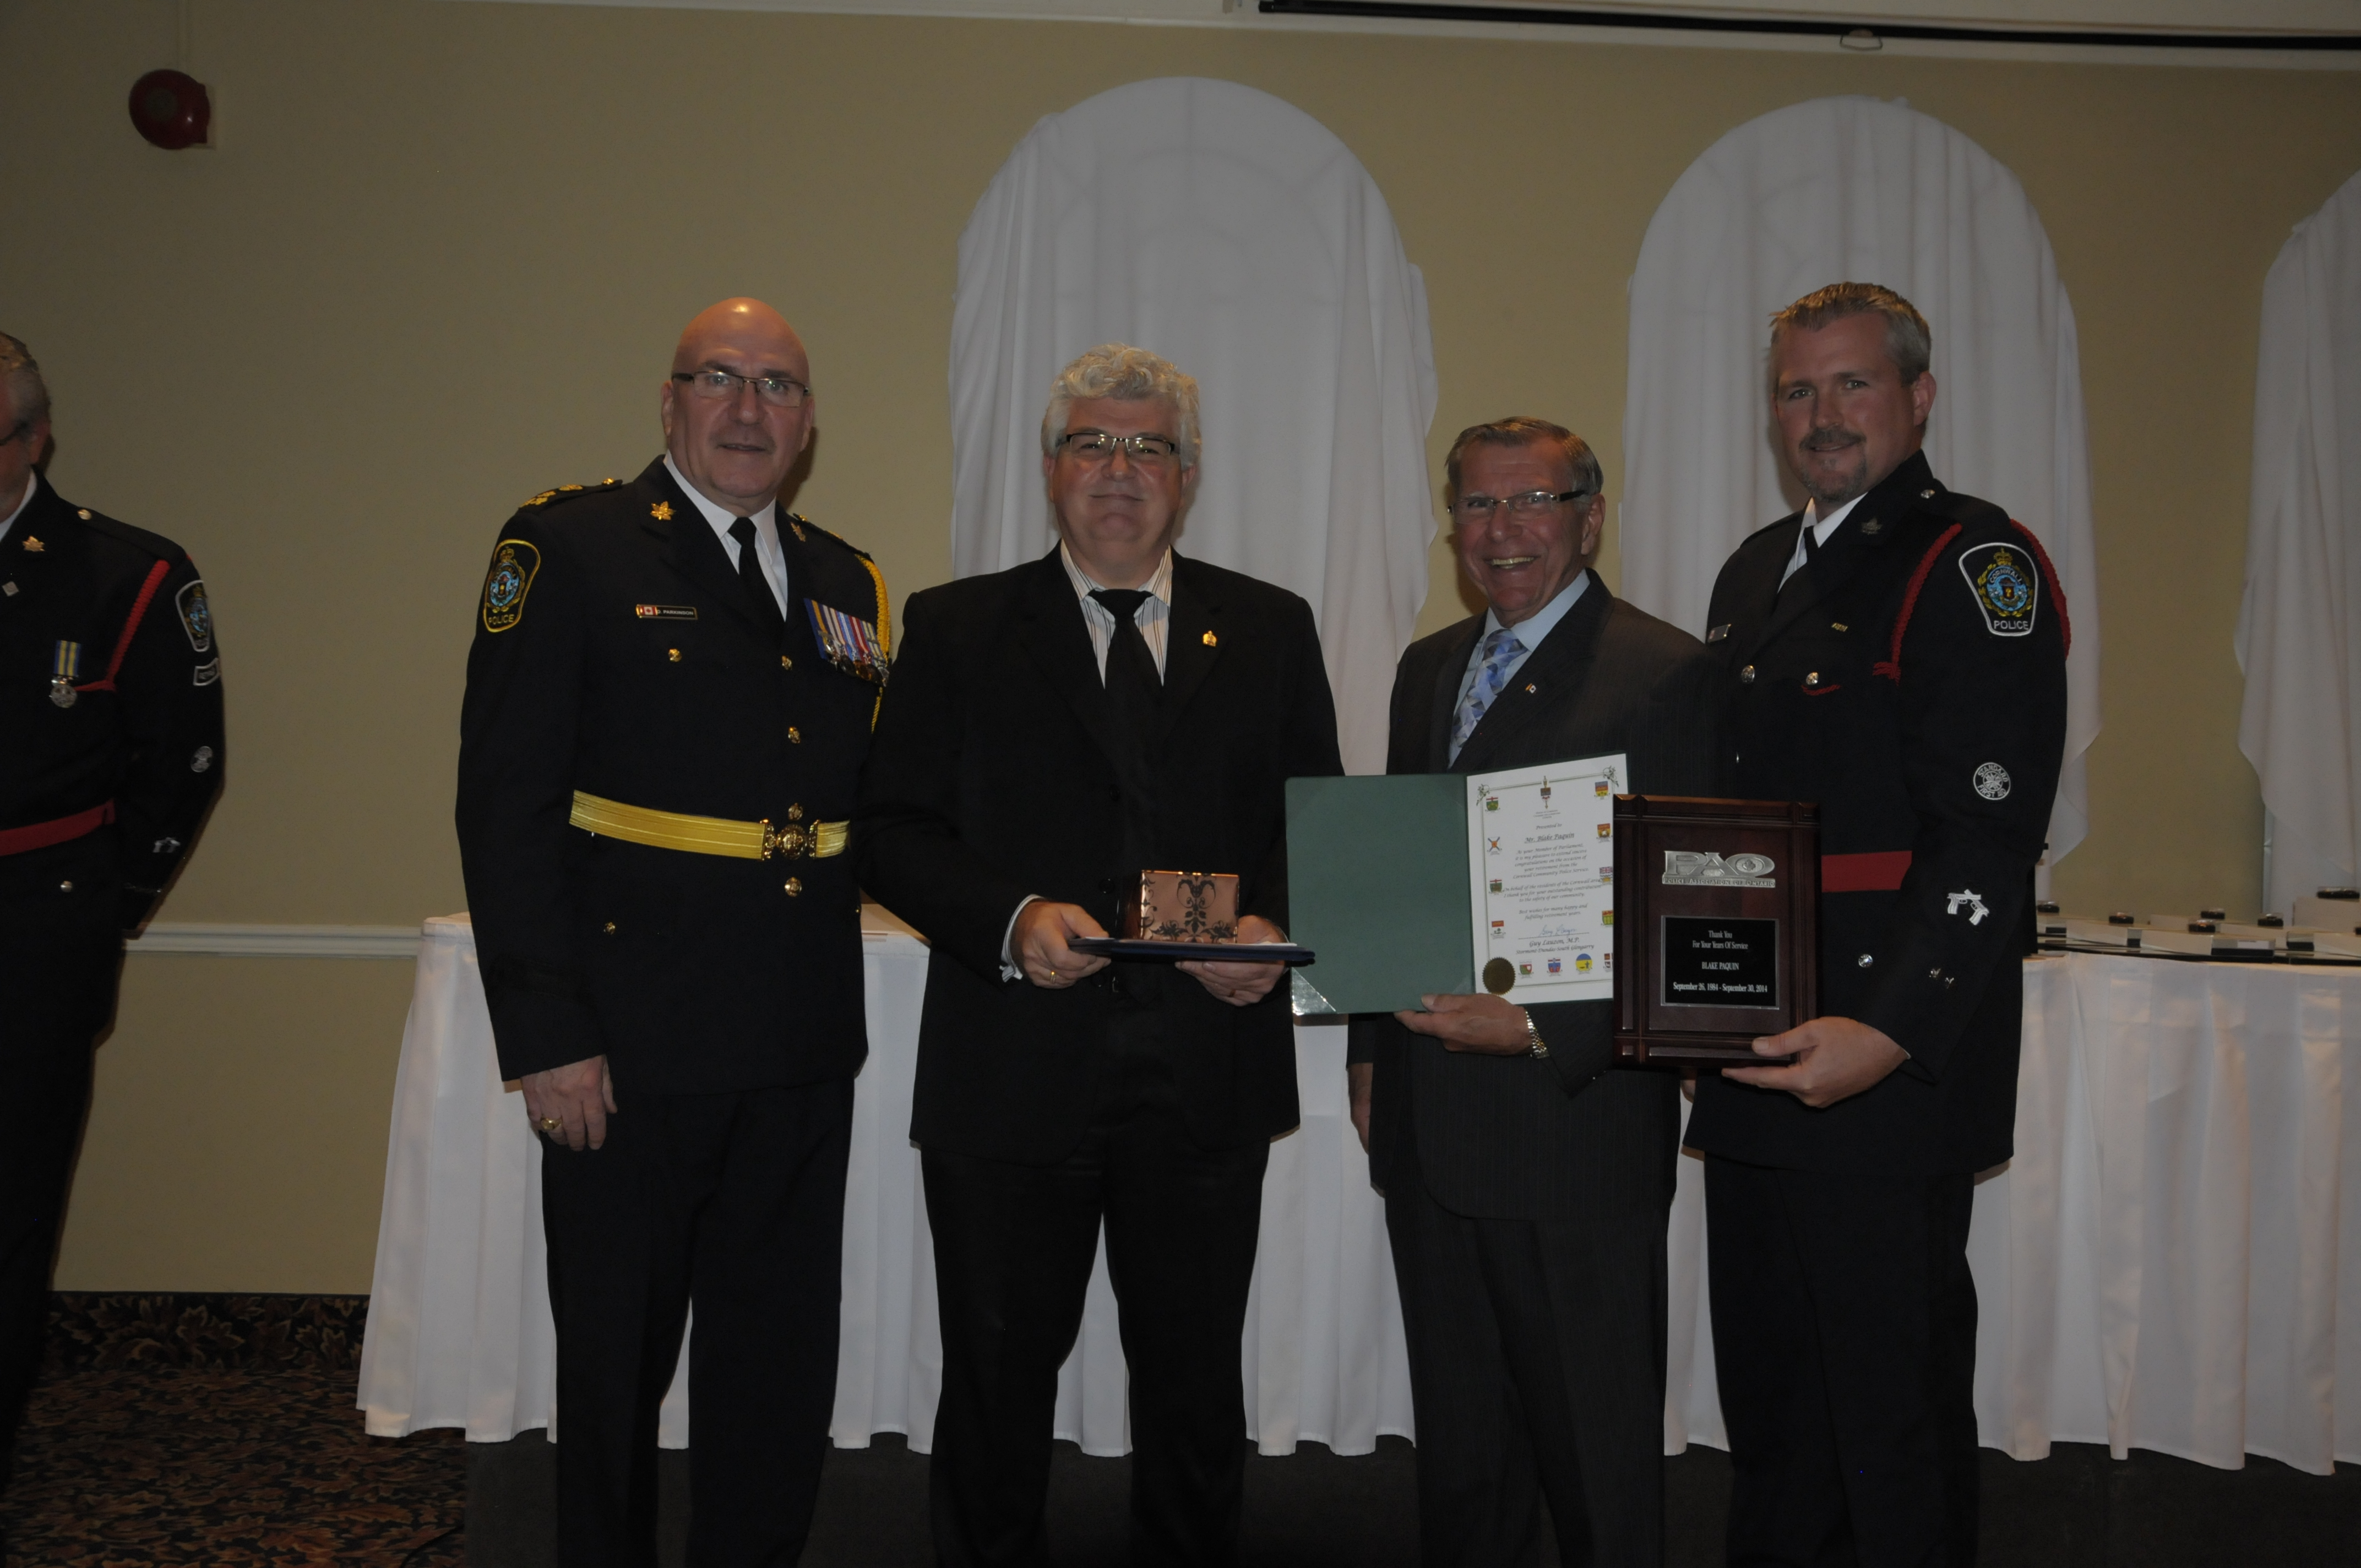 Pictured (from left) are Chief Dan Parkinson, Blake Paquin (Ret.), MP Guy Lauzon, CPA President Dave MacLean. (Cornwall Newswatch)